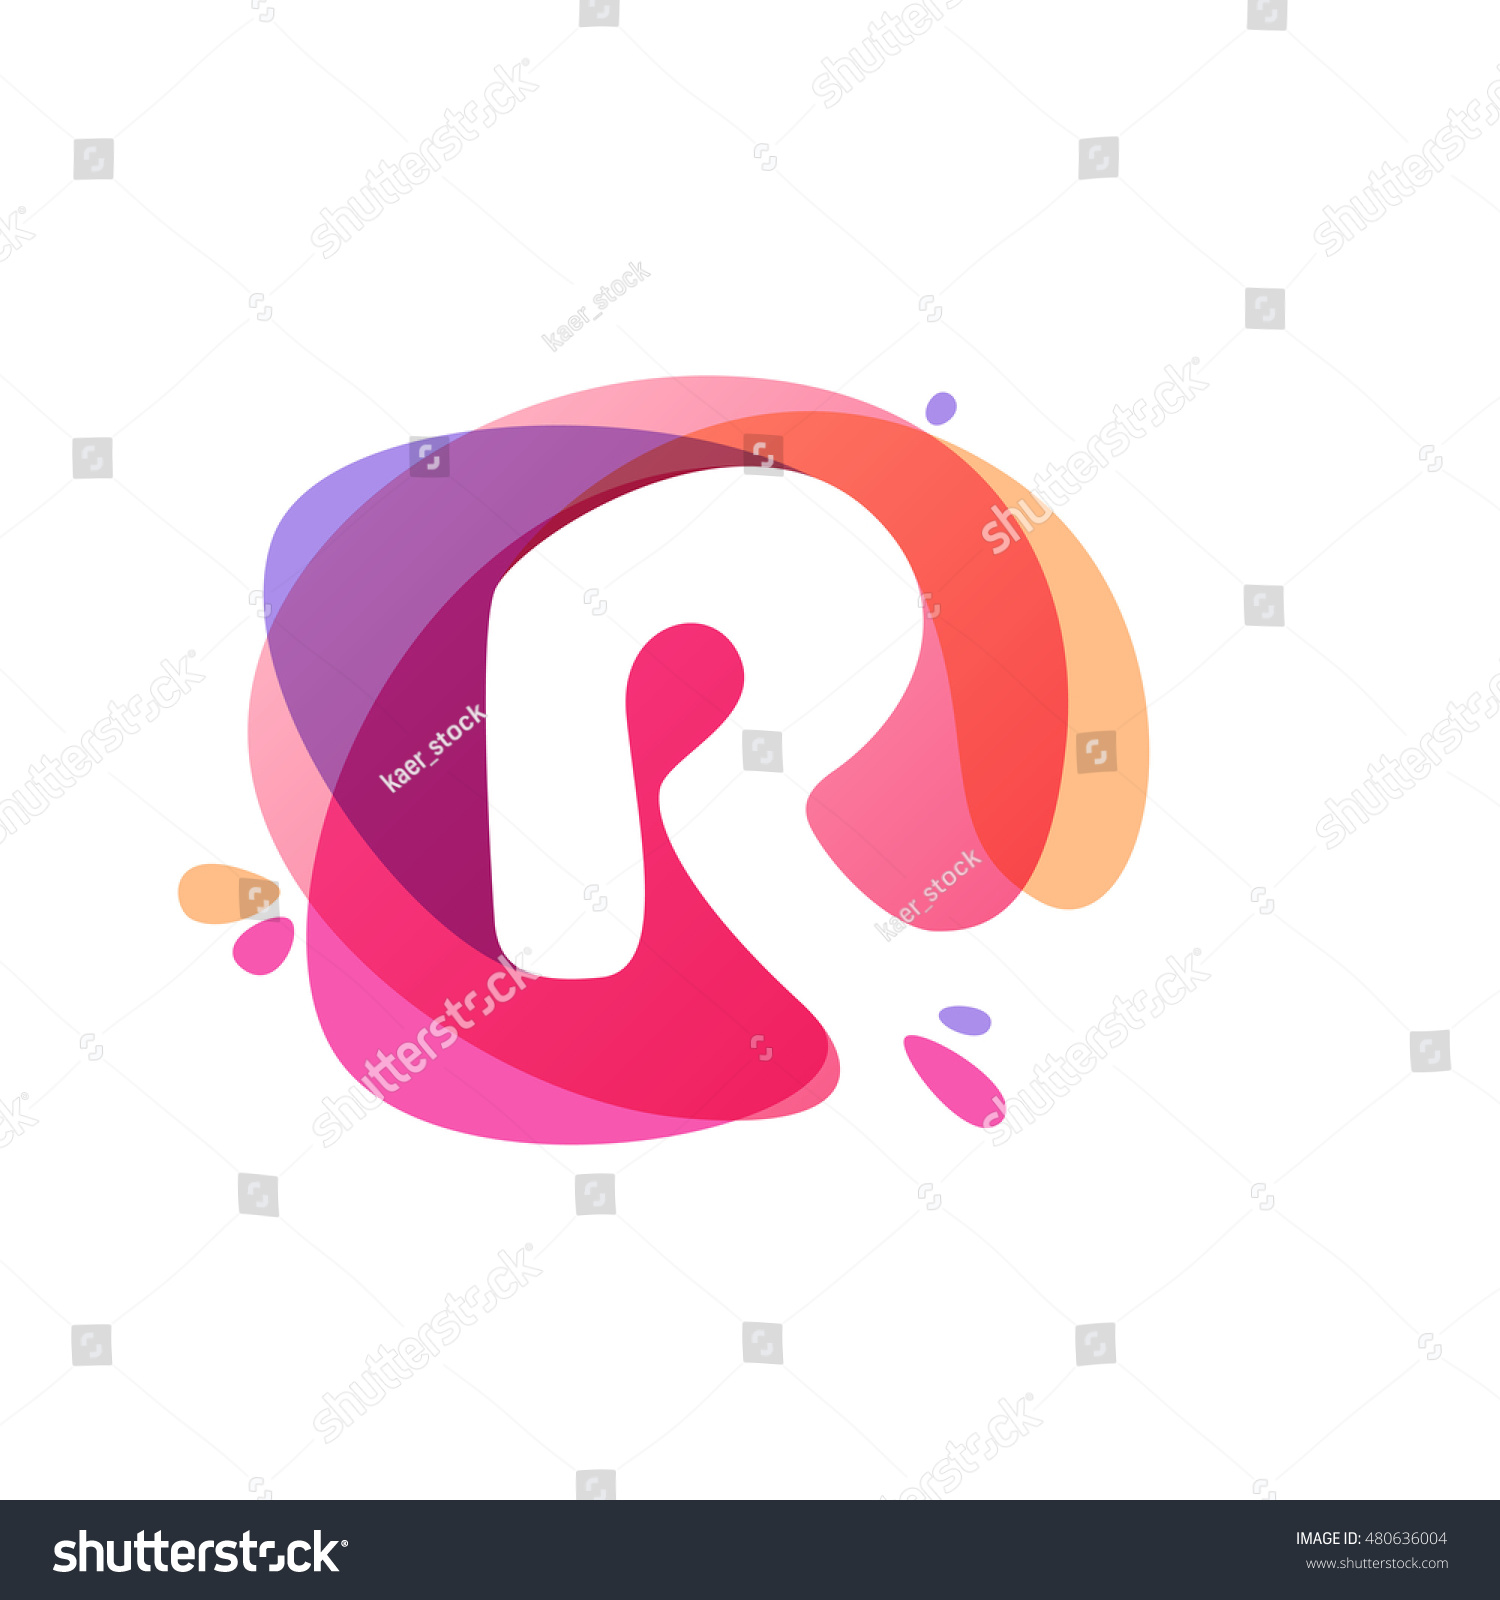 Letter R Logo Colorful Watercolor Splash Stock Vector (Royalty Free ...